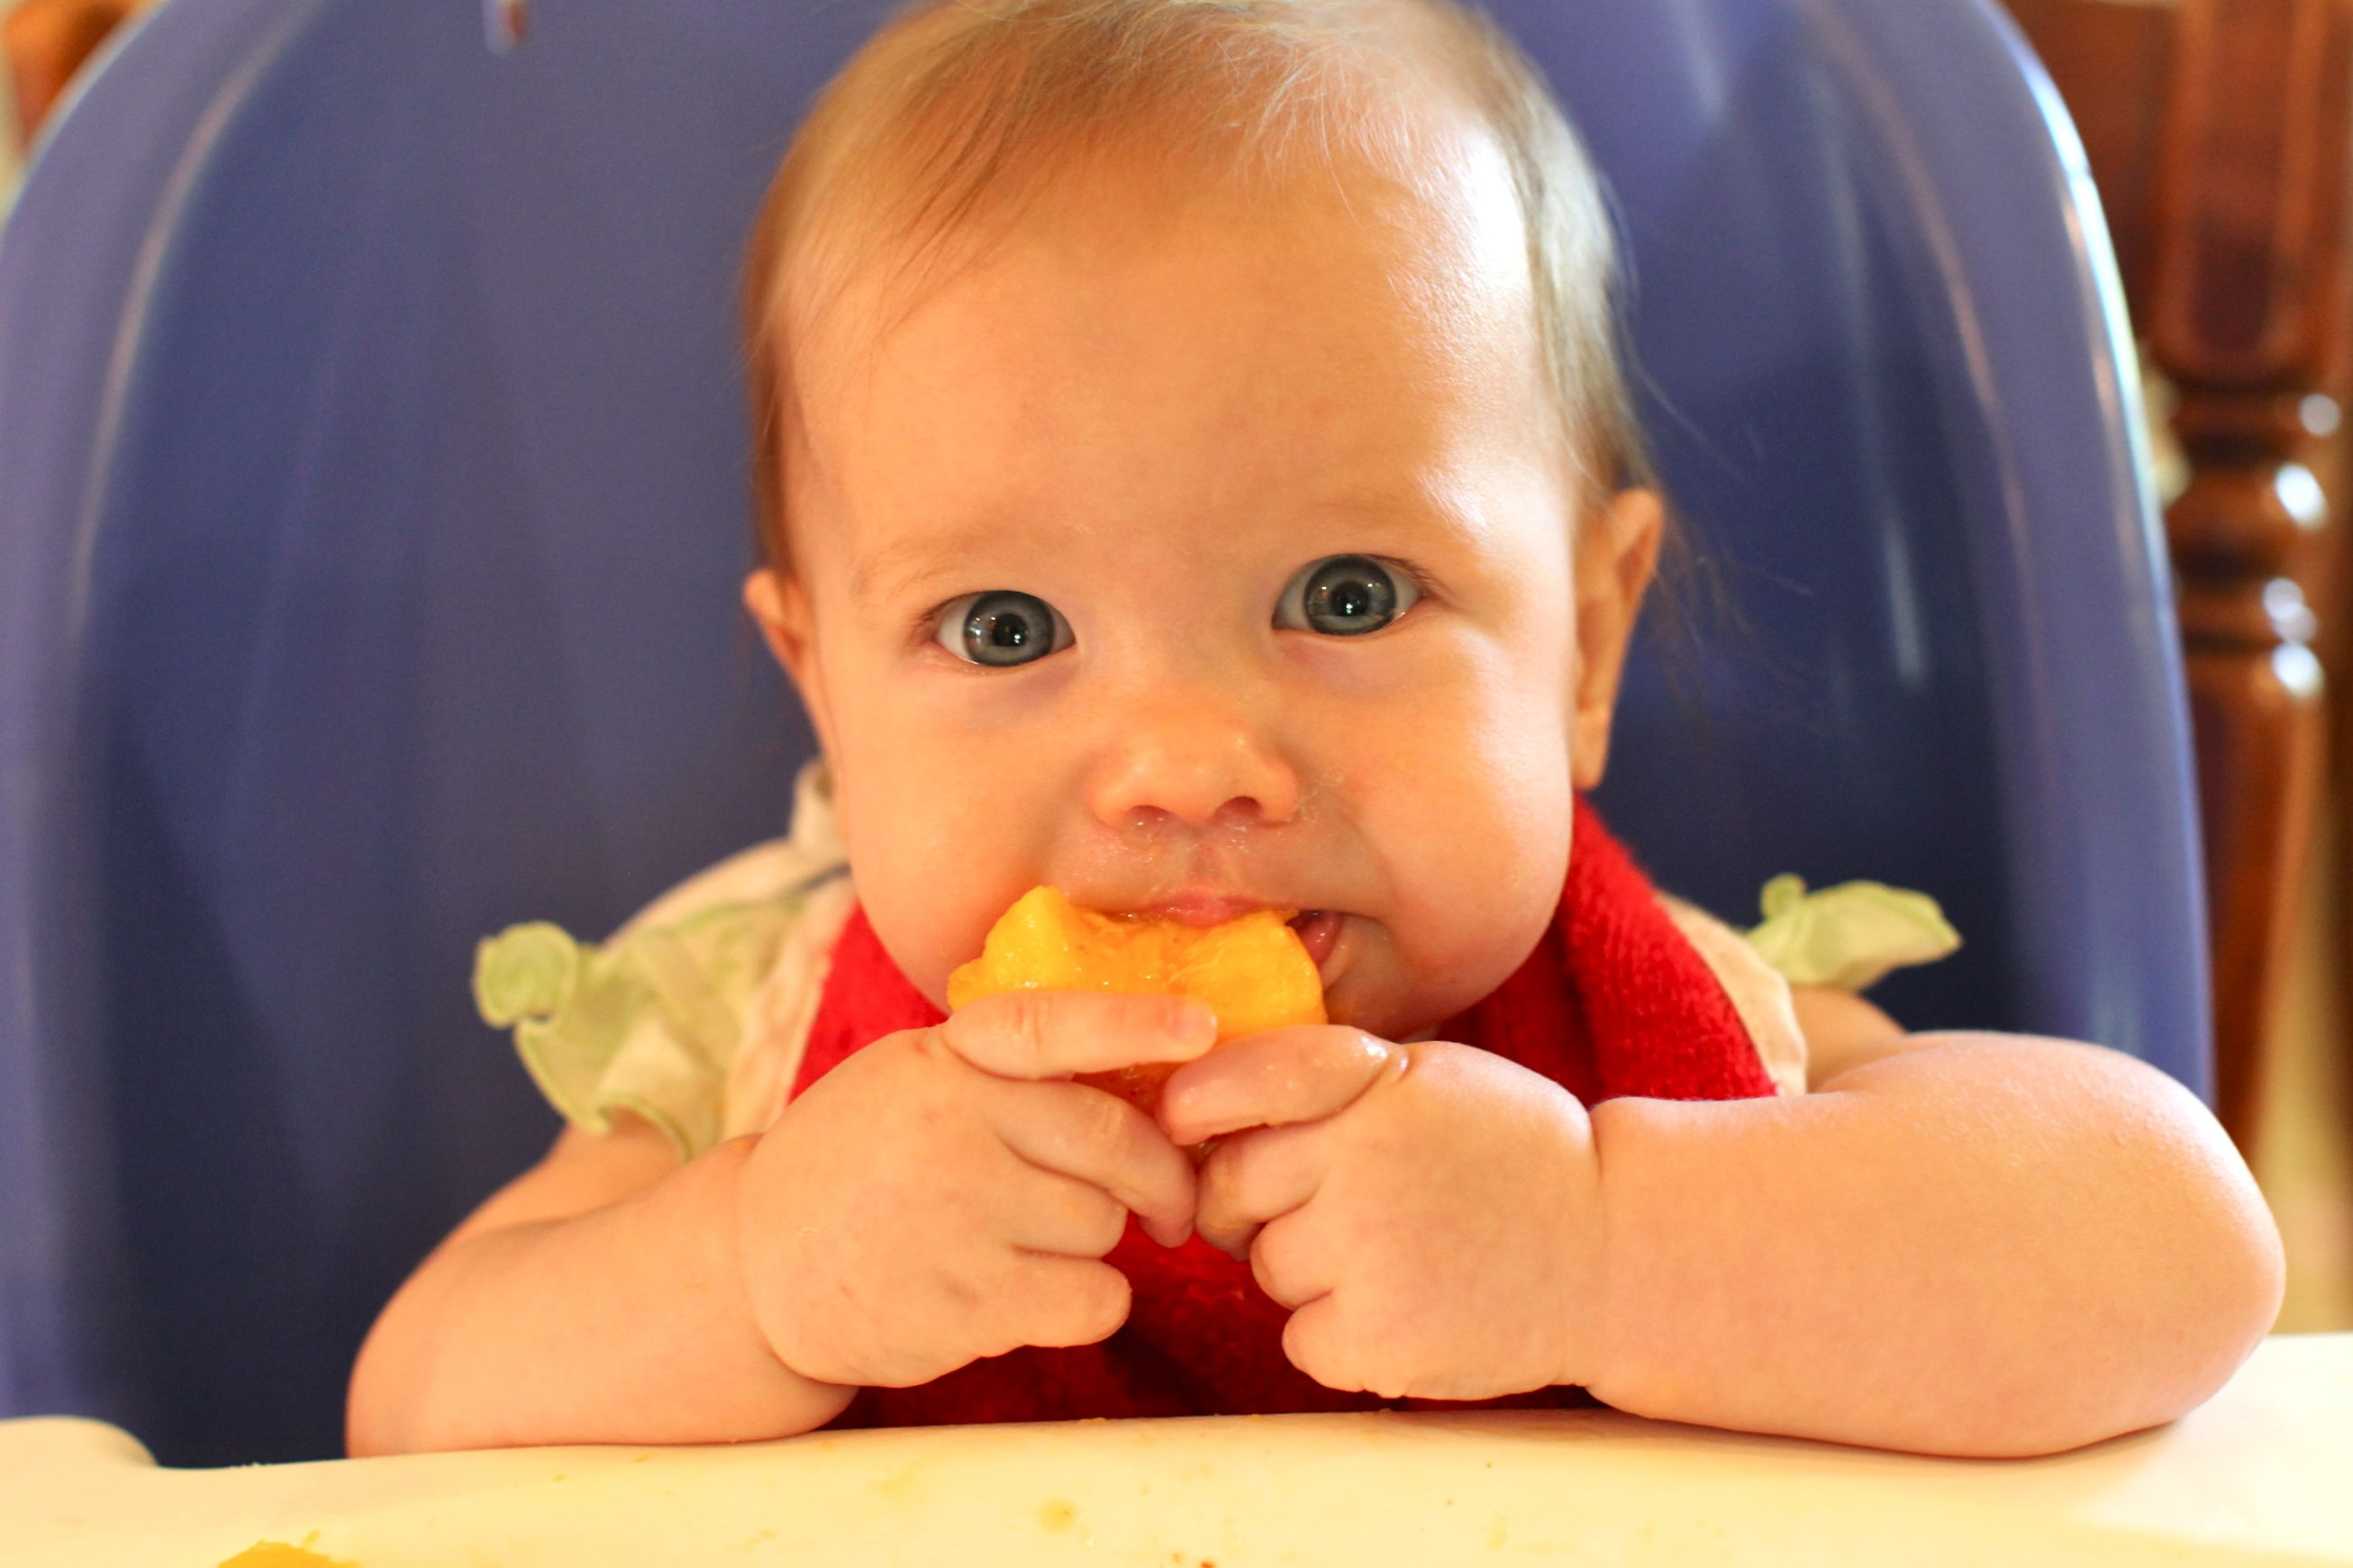 Weaning A Baby Off Formula How I Discovered And Embraced Baby Led Weaning Feeding Blw